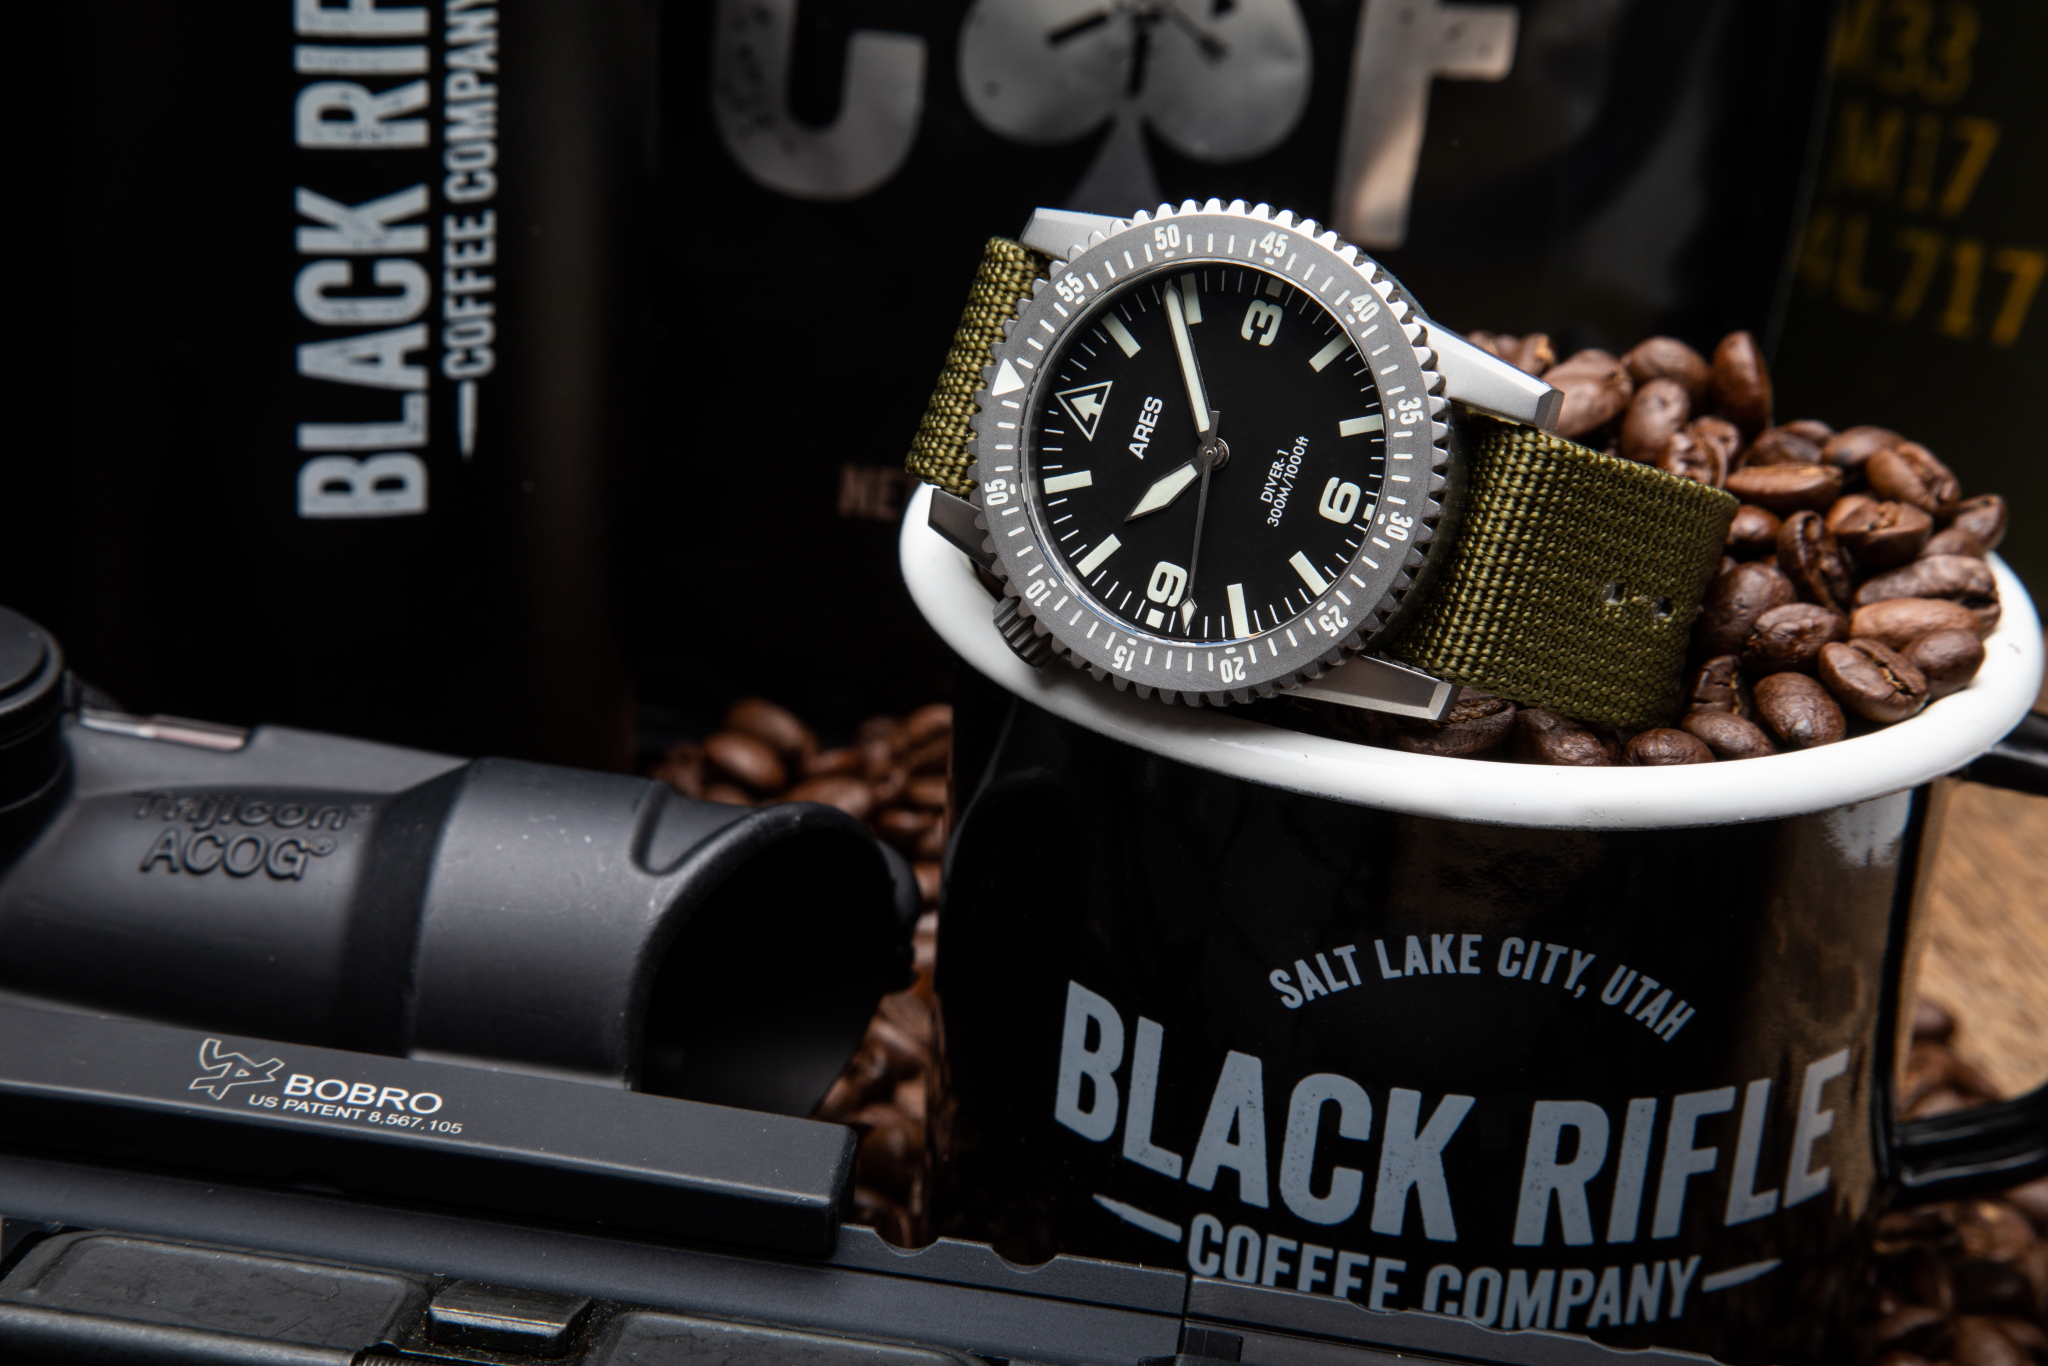 ___Ares Diver-1 BRCC 002a-2048 Black Rifle Coffee Company Promotion edited by Brand G Creative 13 NOV 2018.jpg